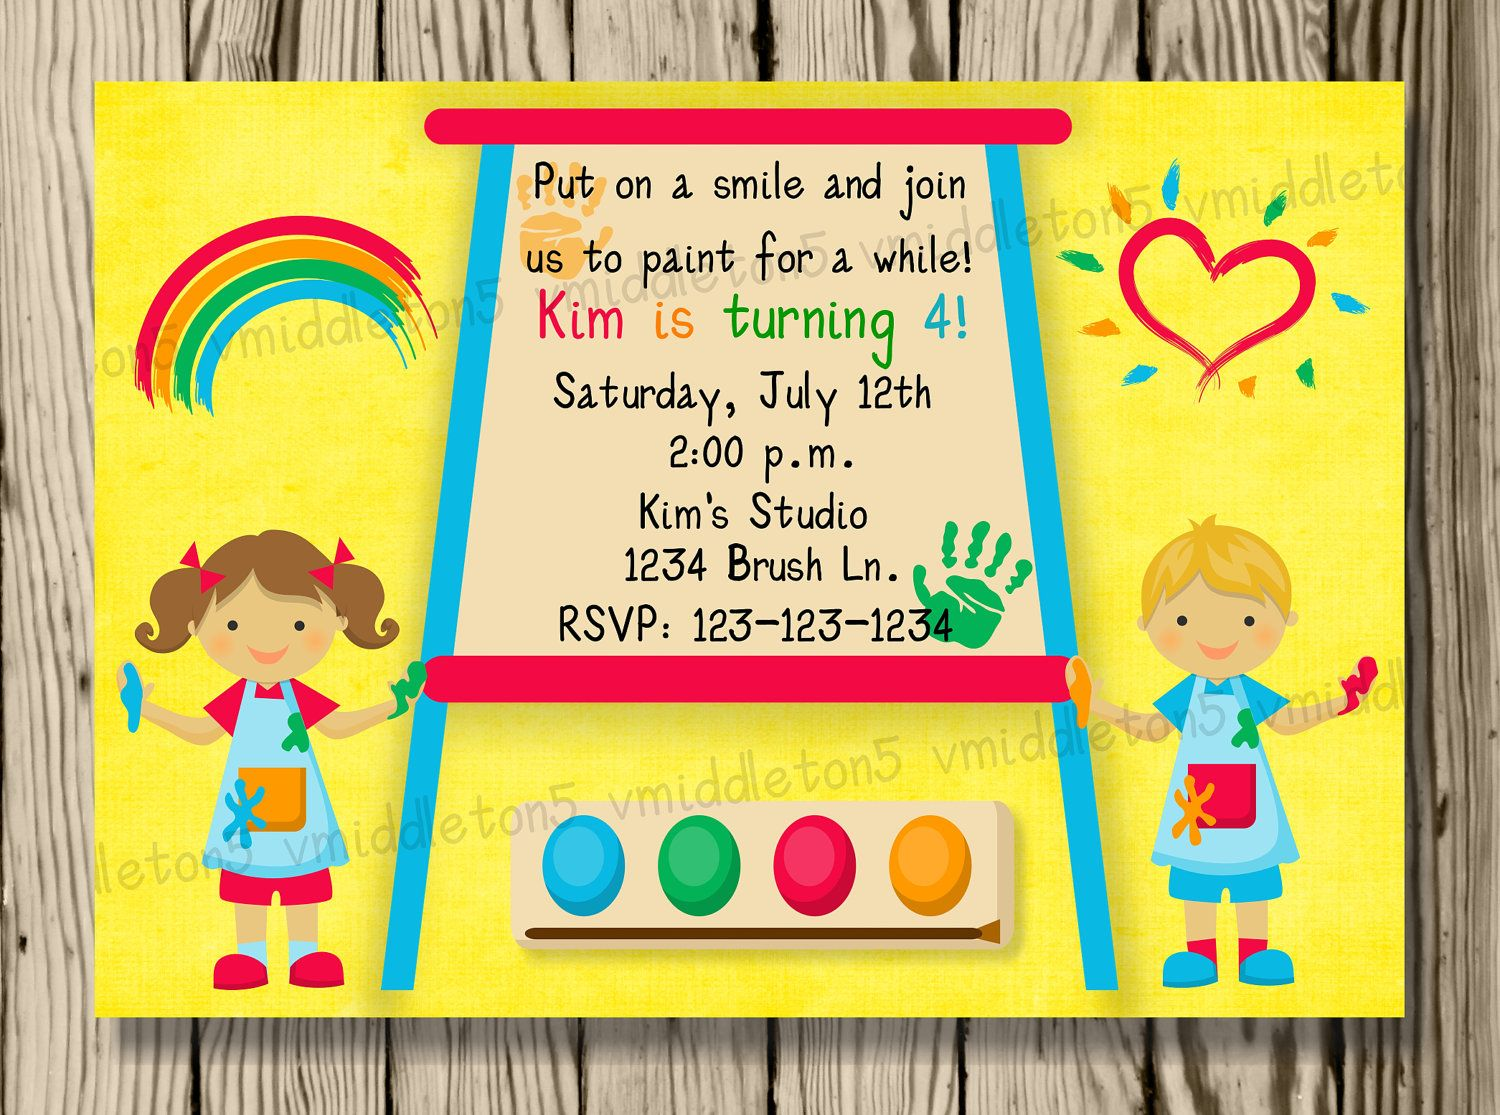 Kids Painting or Art Party Invitation – Invitation for Kids Party